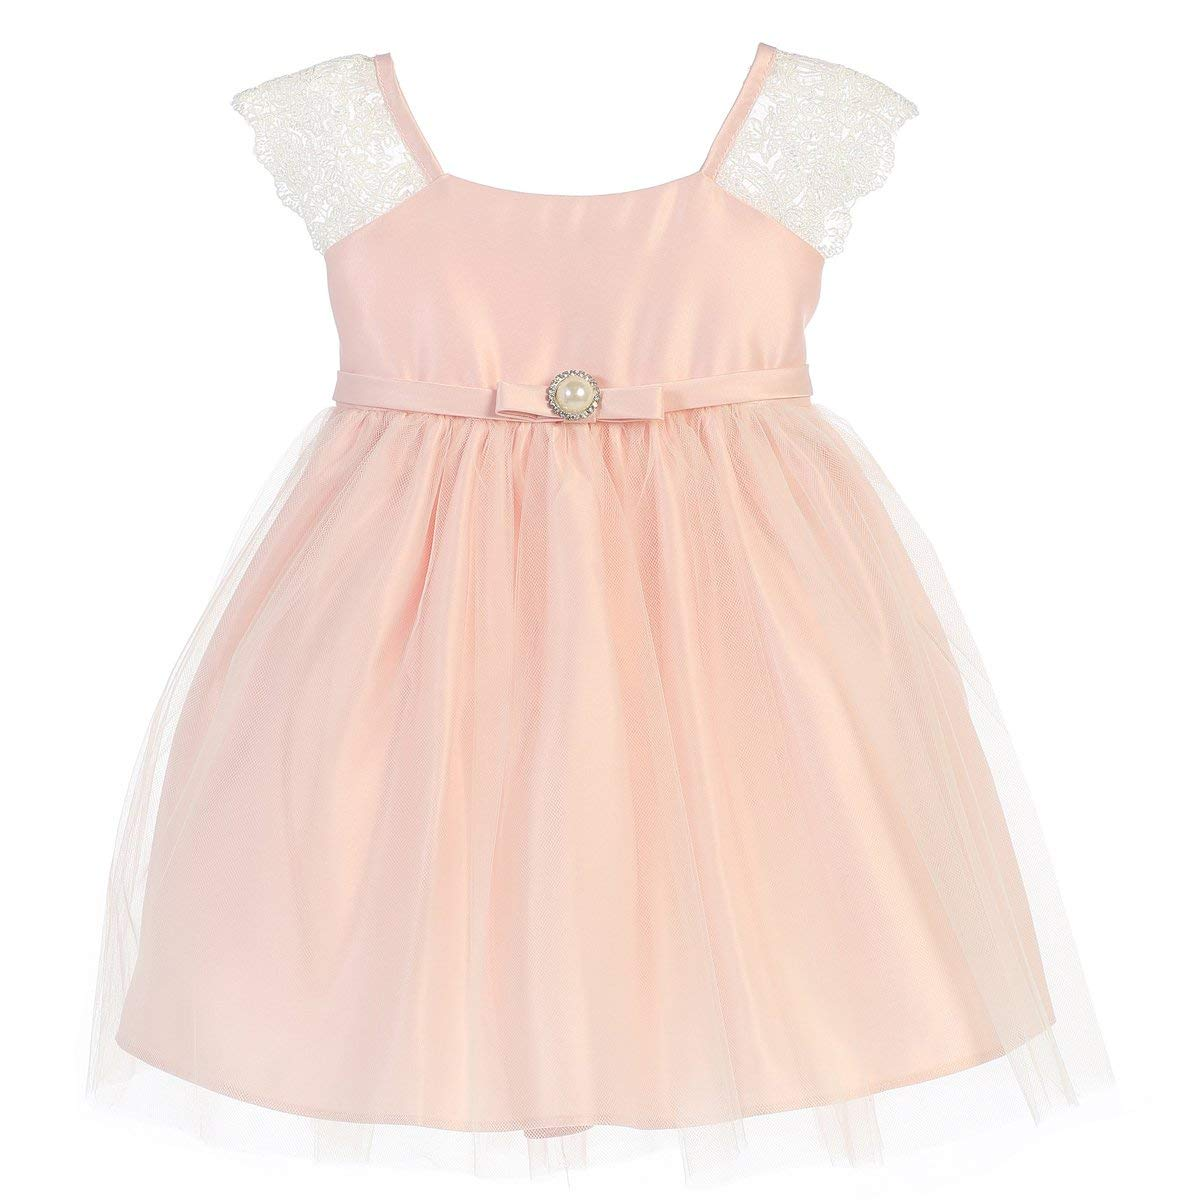 4221bb9553a03a Get Quotations · Sweet Kids Baby Girls Petal Pink Lace Sleeve Pearl Broach  Easter Dress 9M